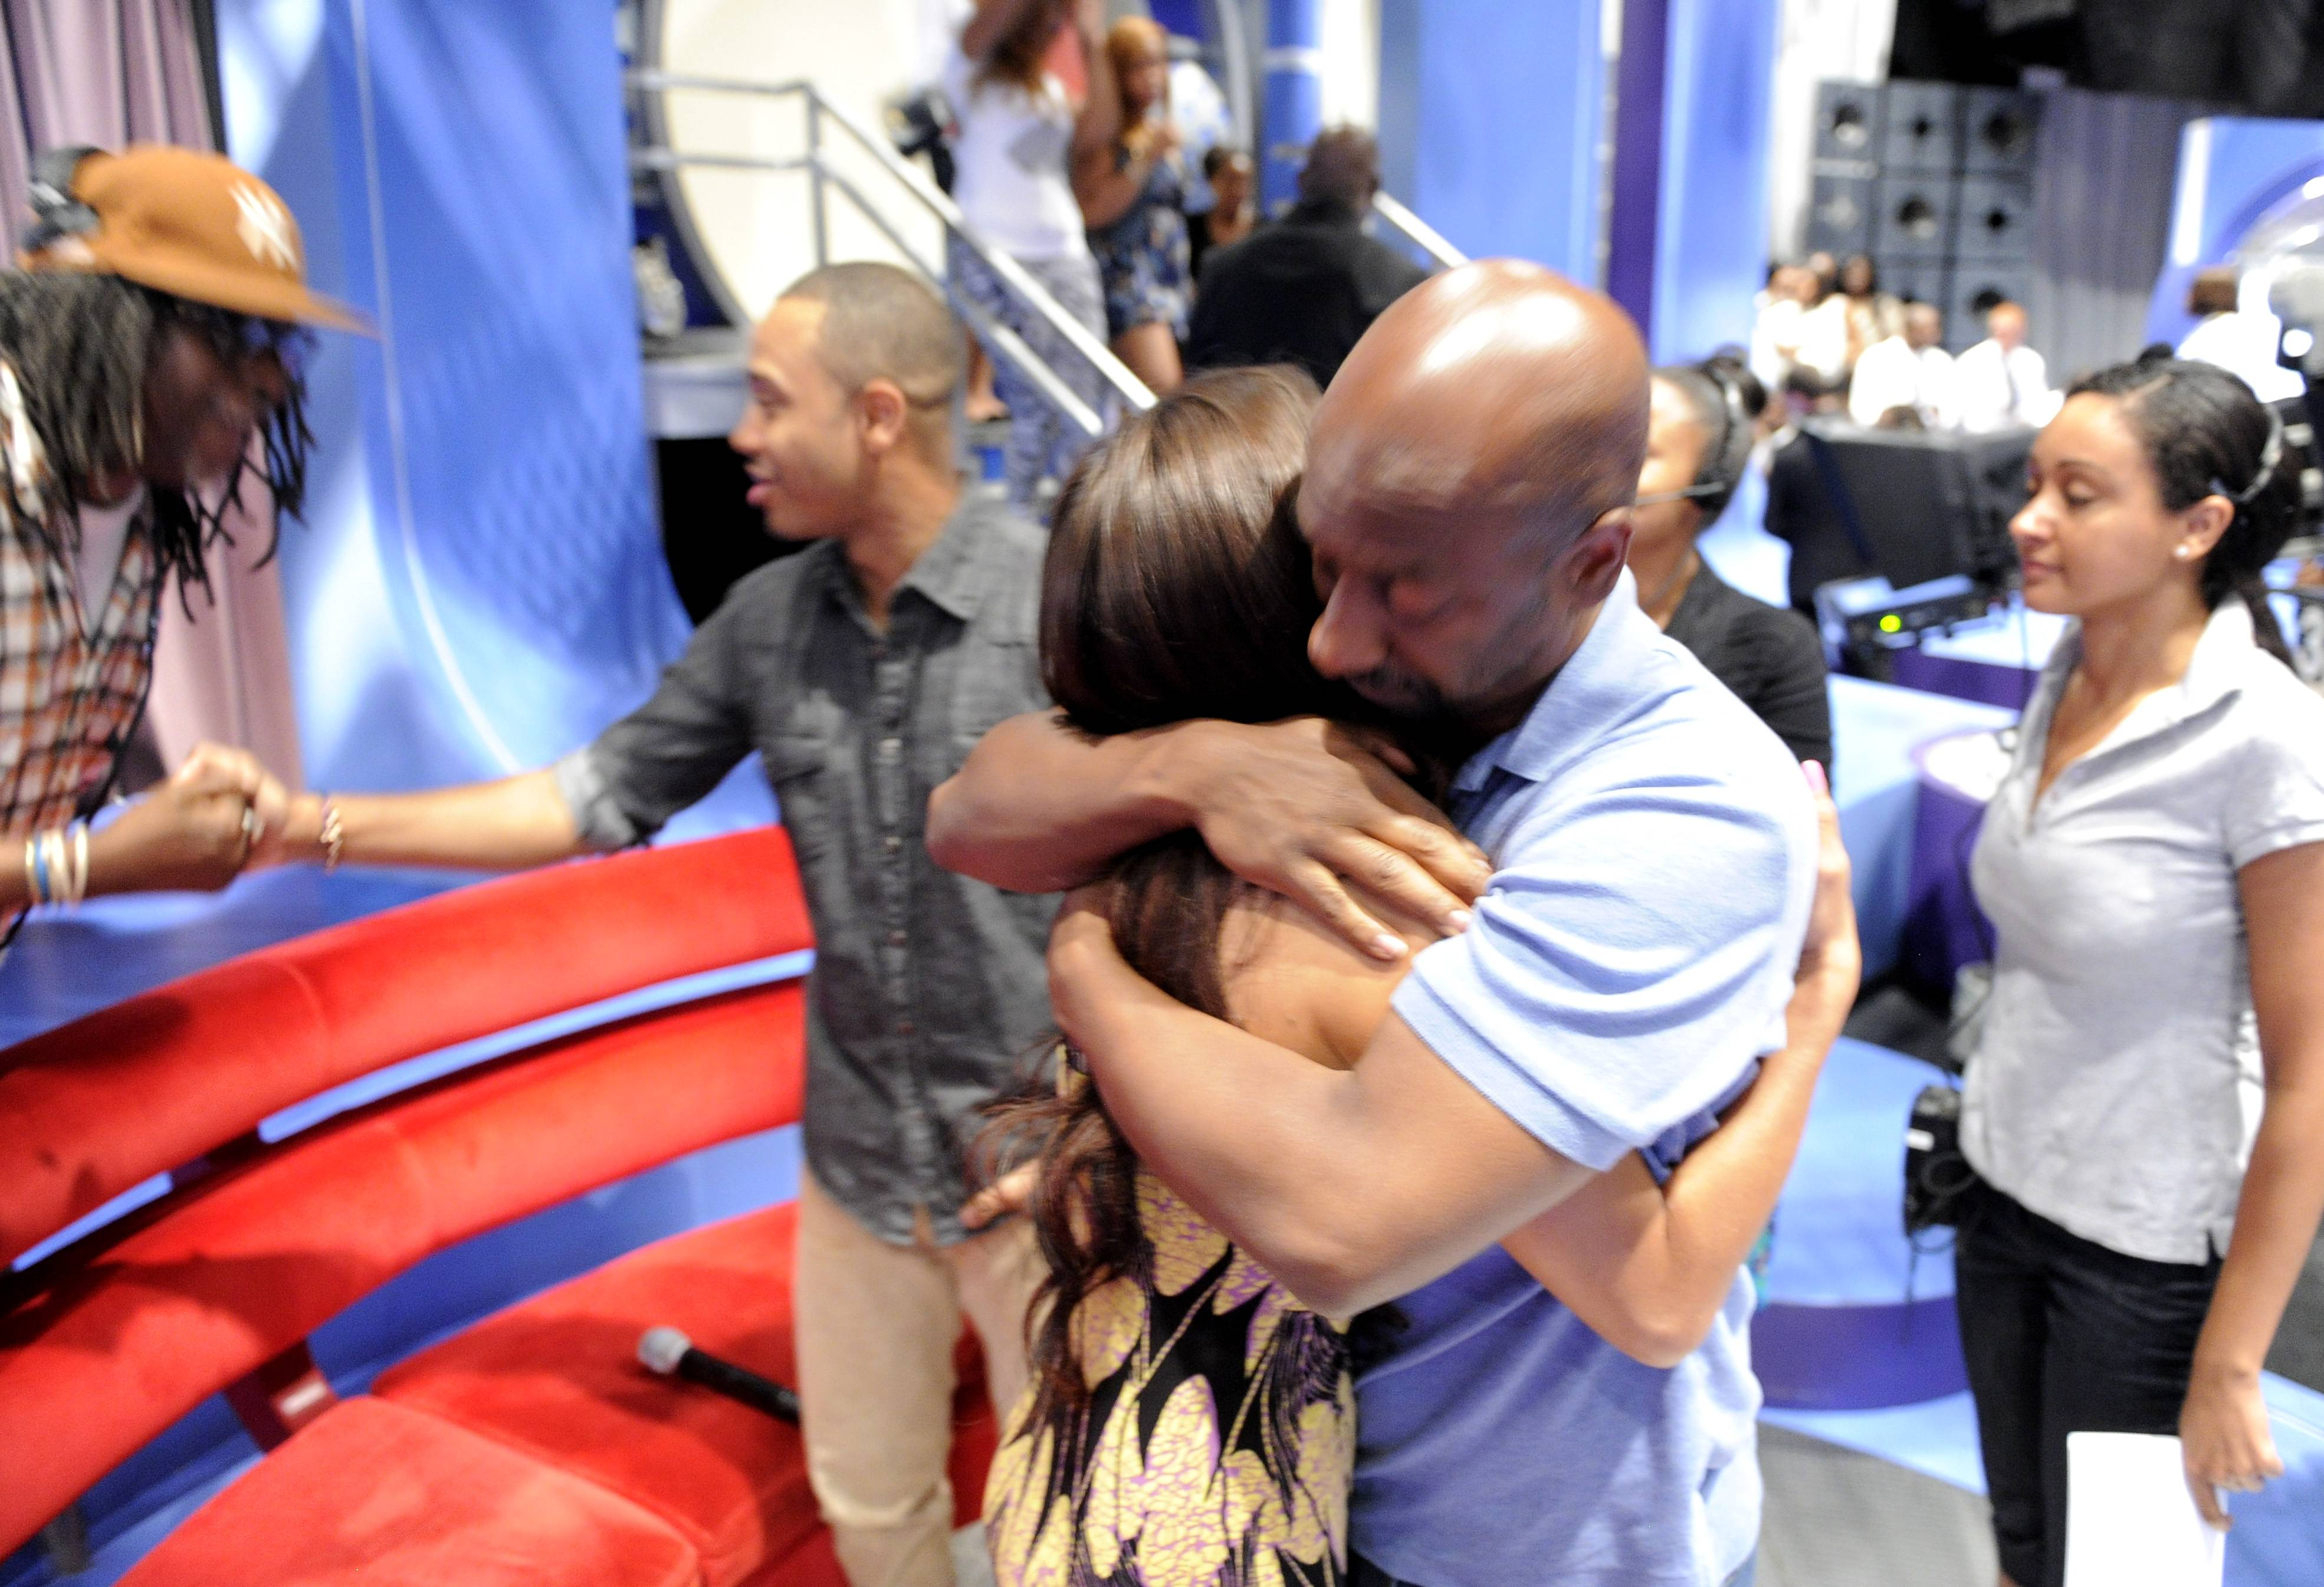 Give Me a Hug - Stephen Hill givesRocsi Diaz a hug after the announcement that she andTerrence J will be leaving the show in the near future at 106 & Park, May 29, 2012. (Photo: John Ricard / BET)